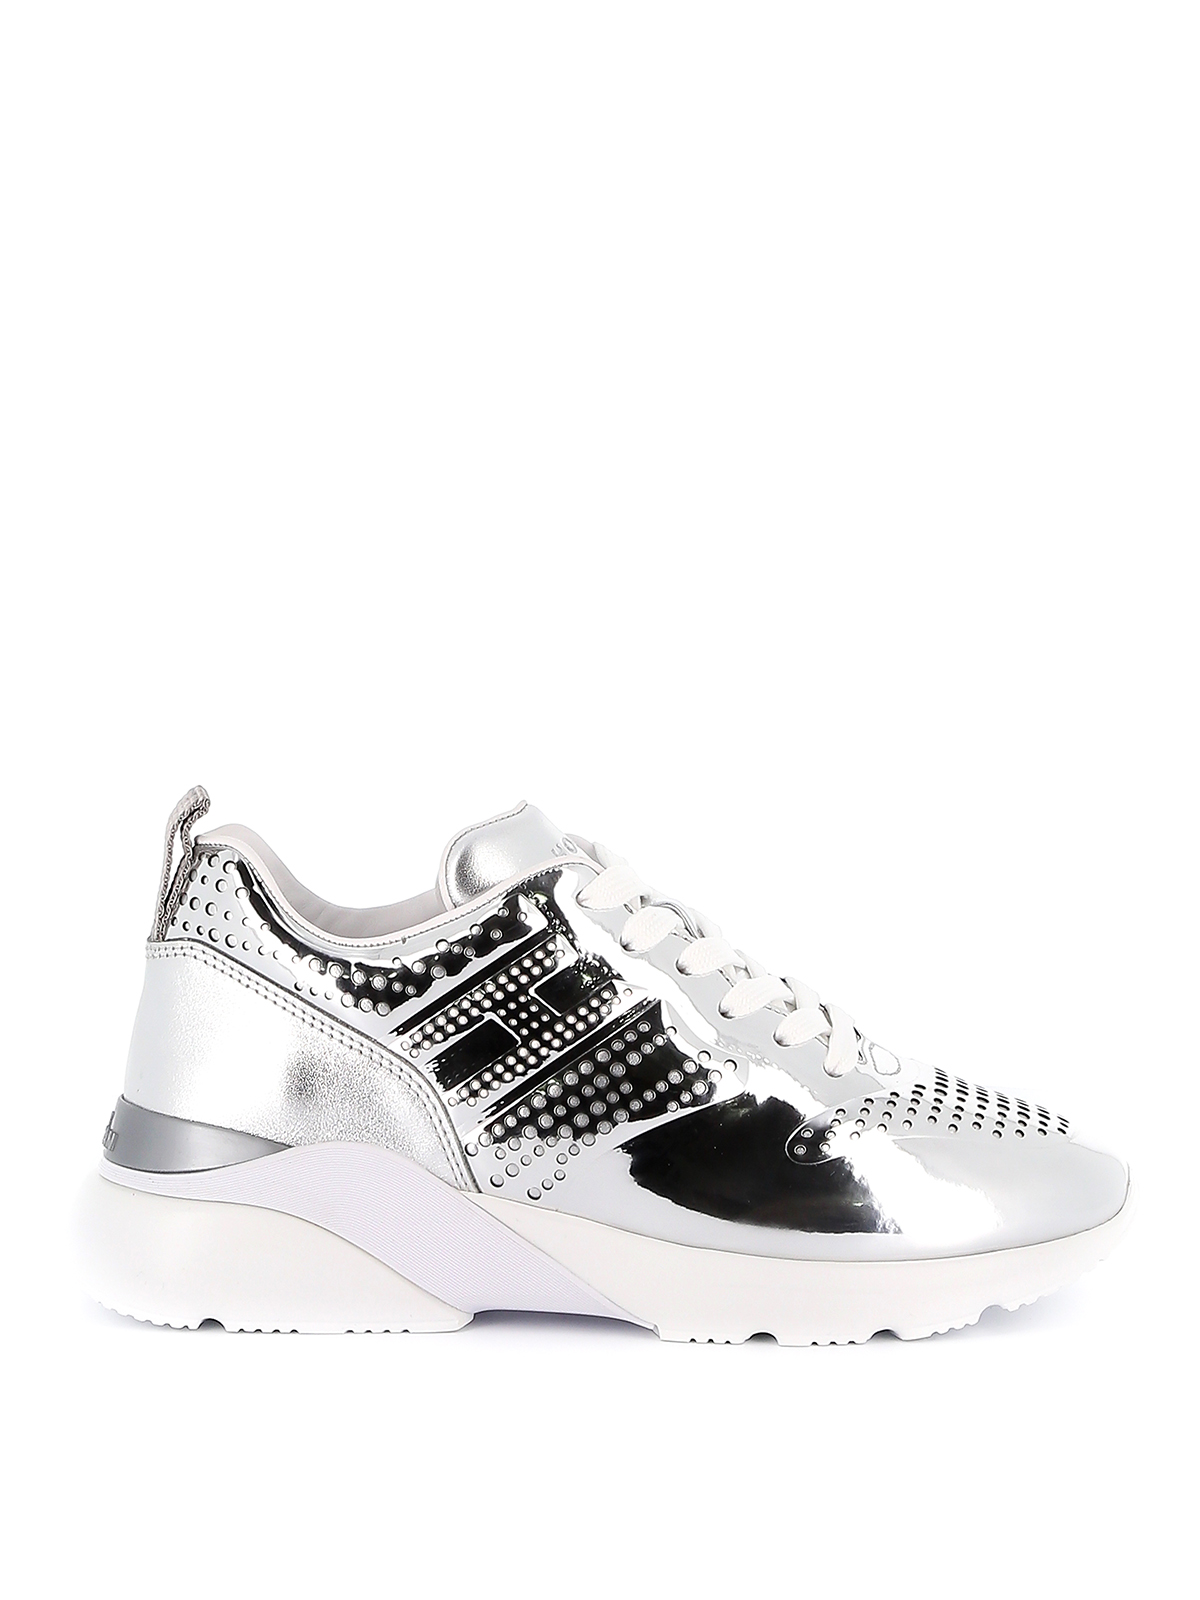 Hogan Active One Patent Leather Mirrored Sneakers In Silver